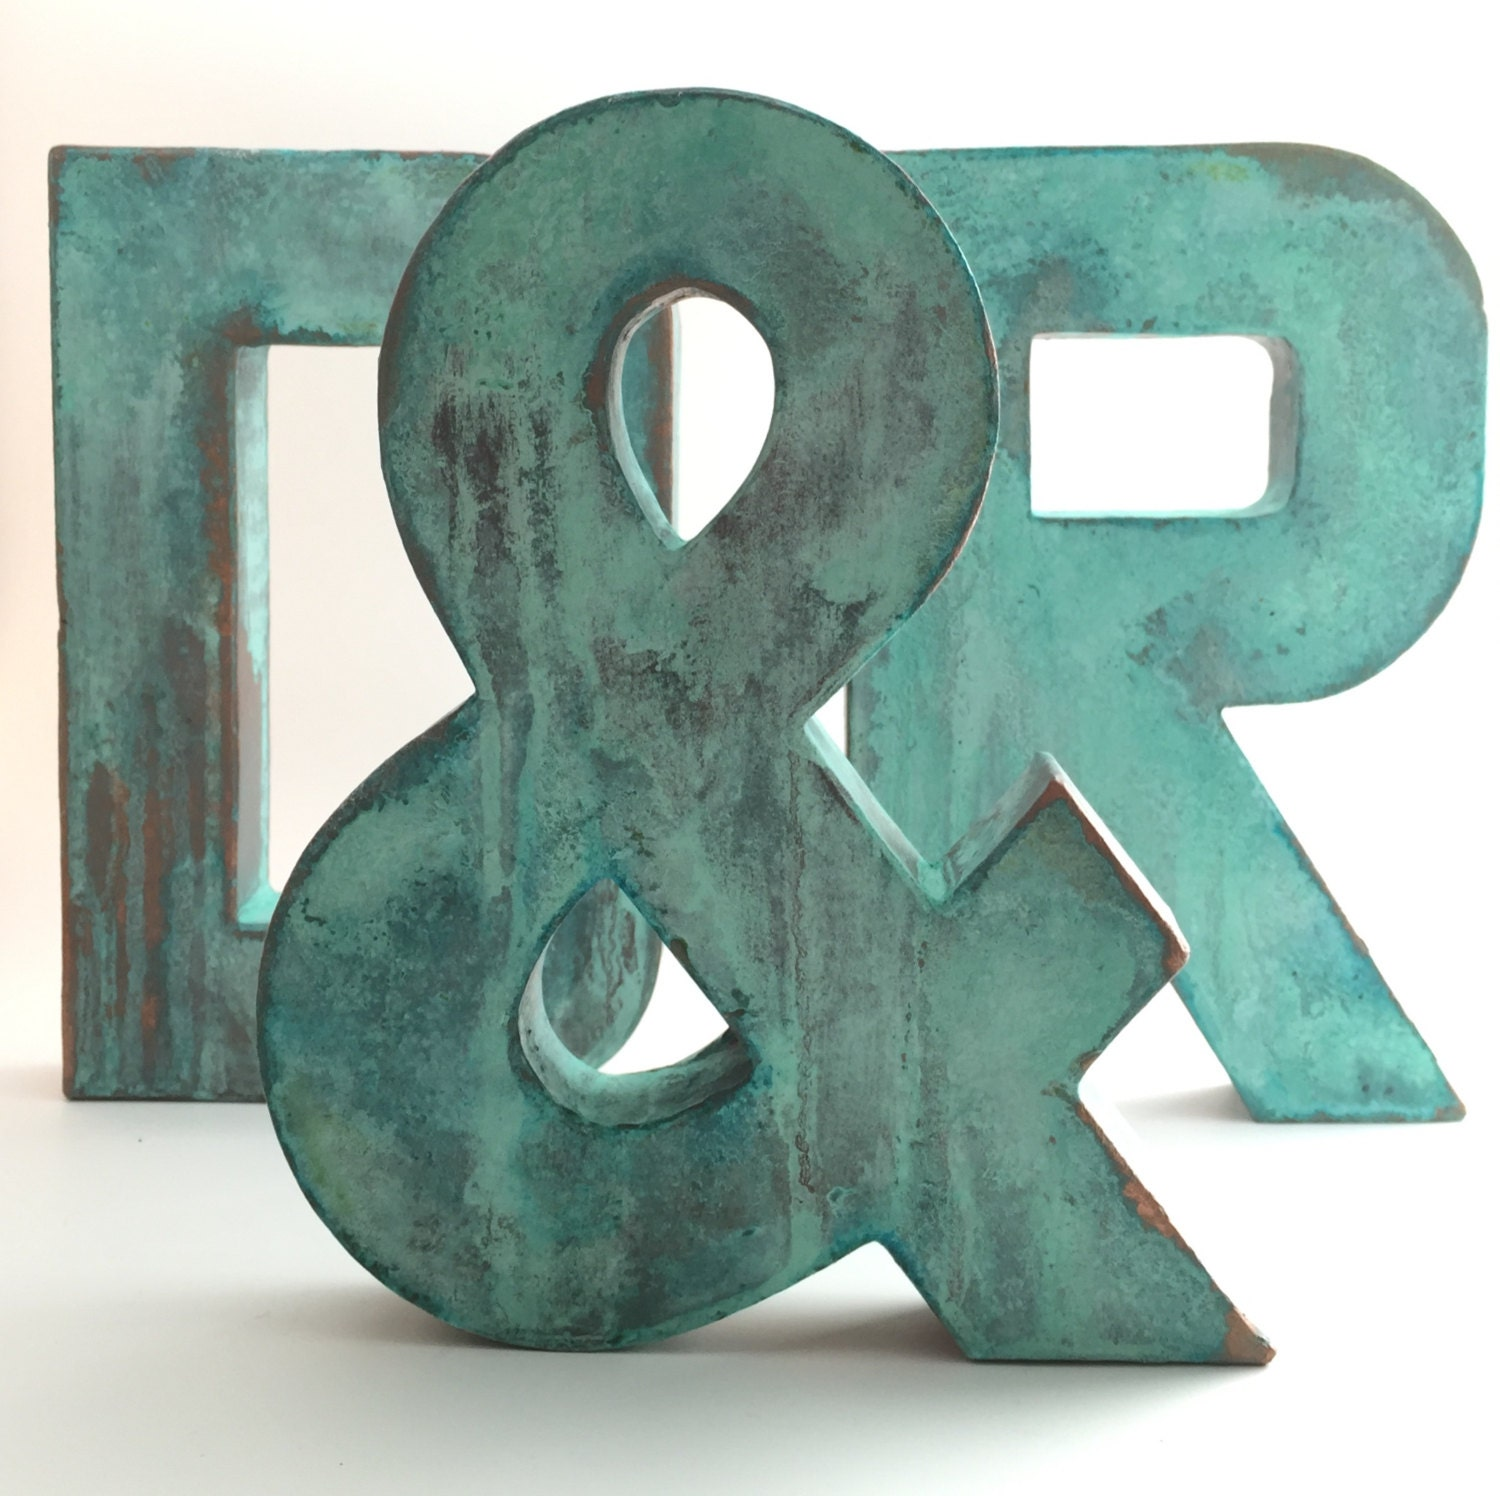 Decorative Metal Initials Faux Metal Letters Oxidized Copper Metal Farmhouse